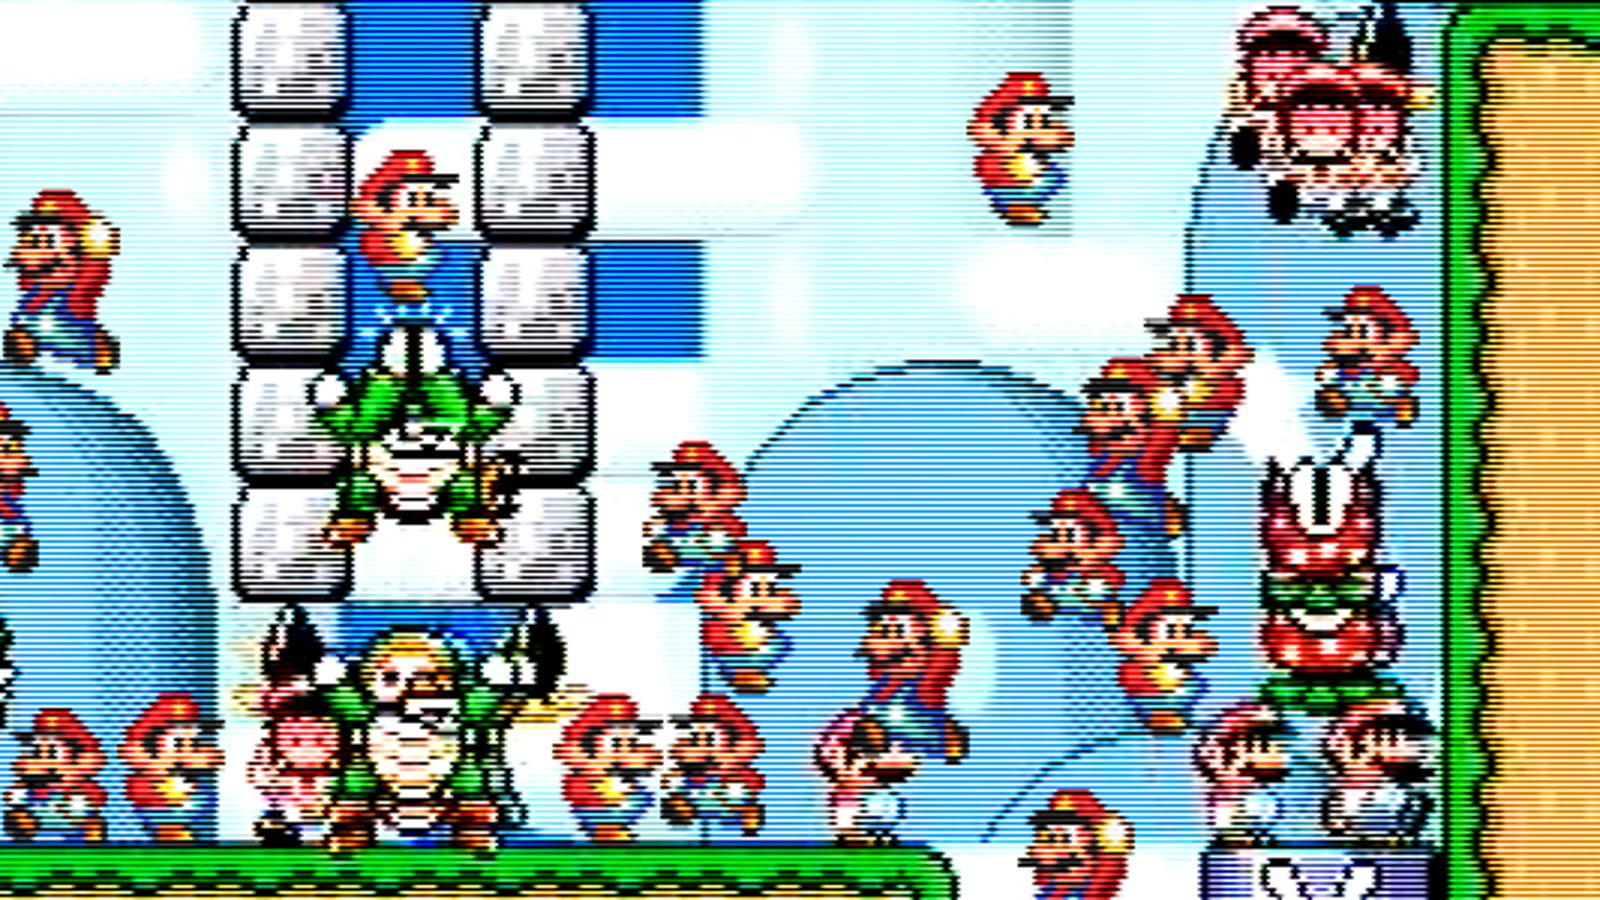 Super Mario World is the key to parallel universes